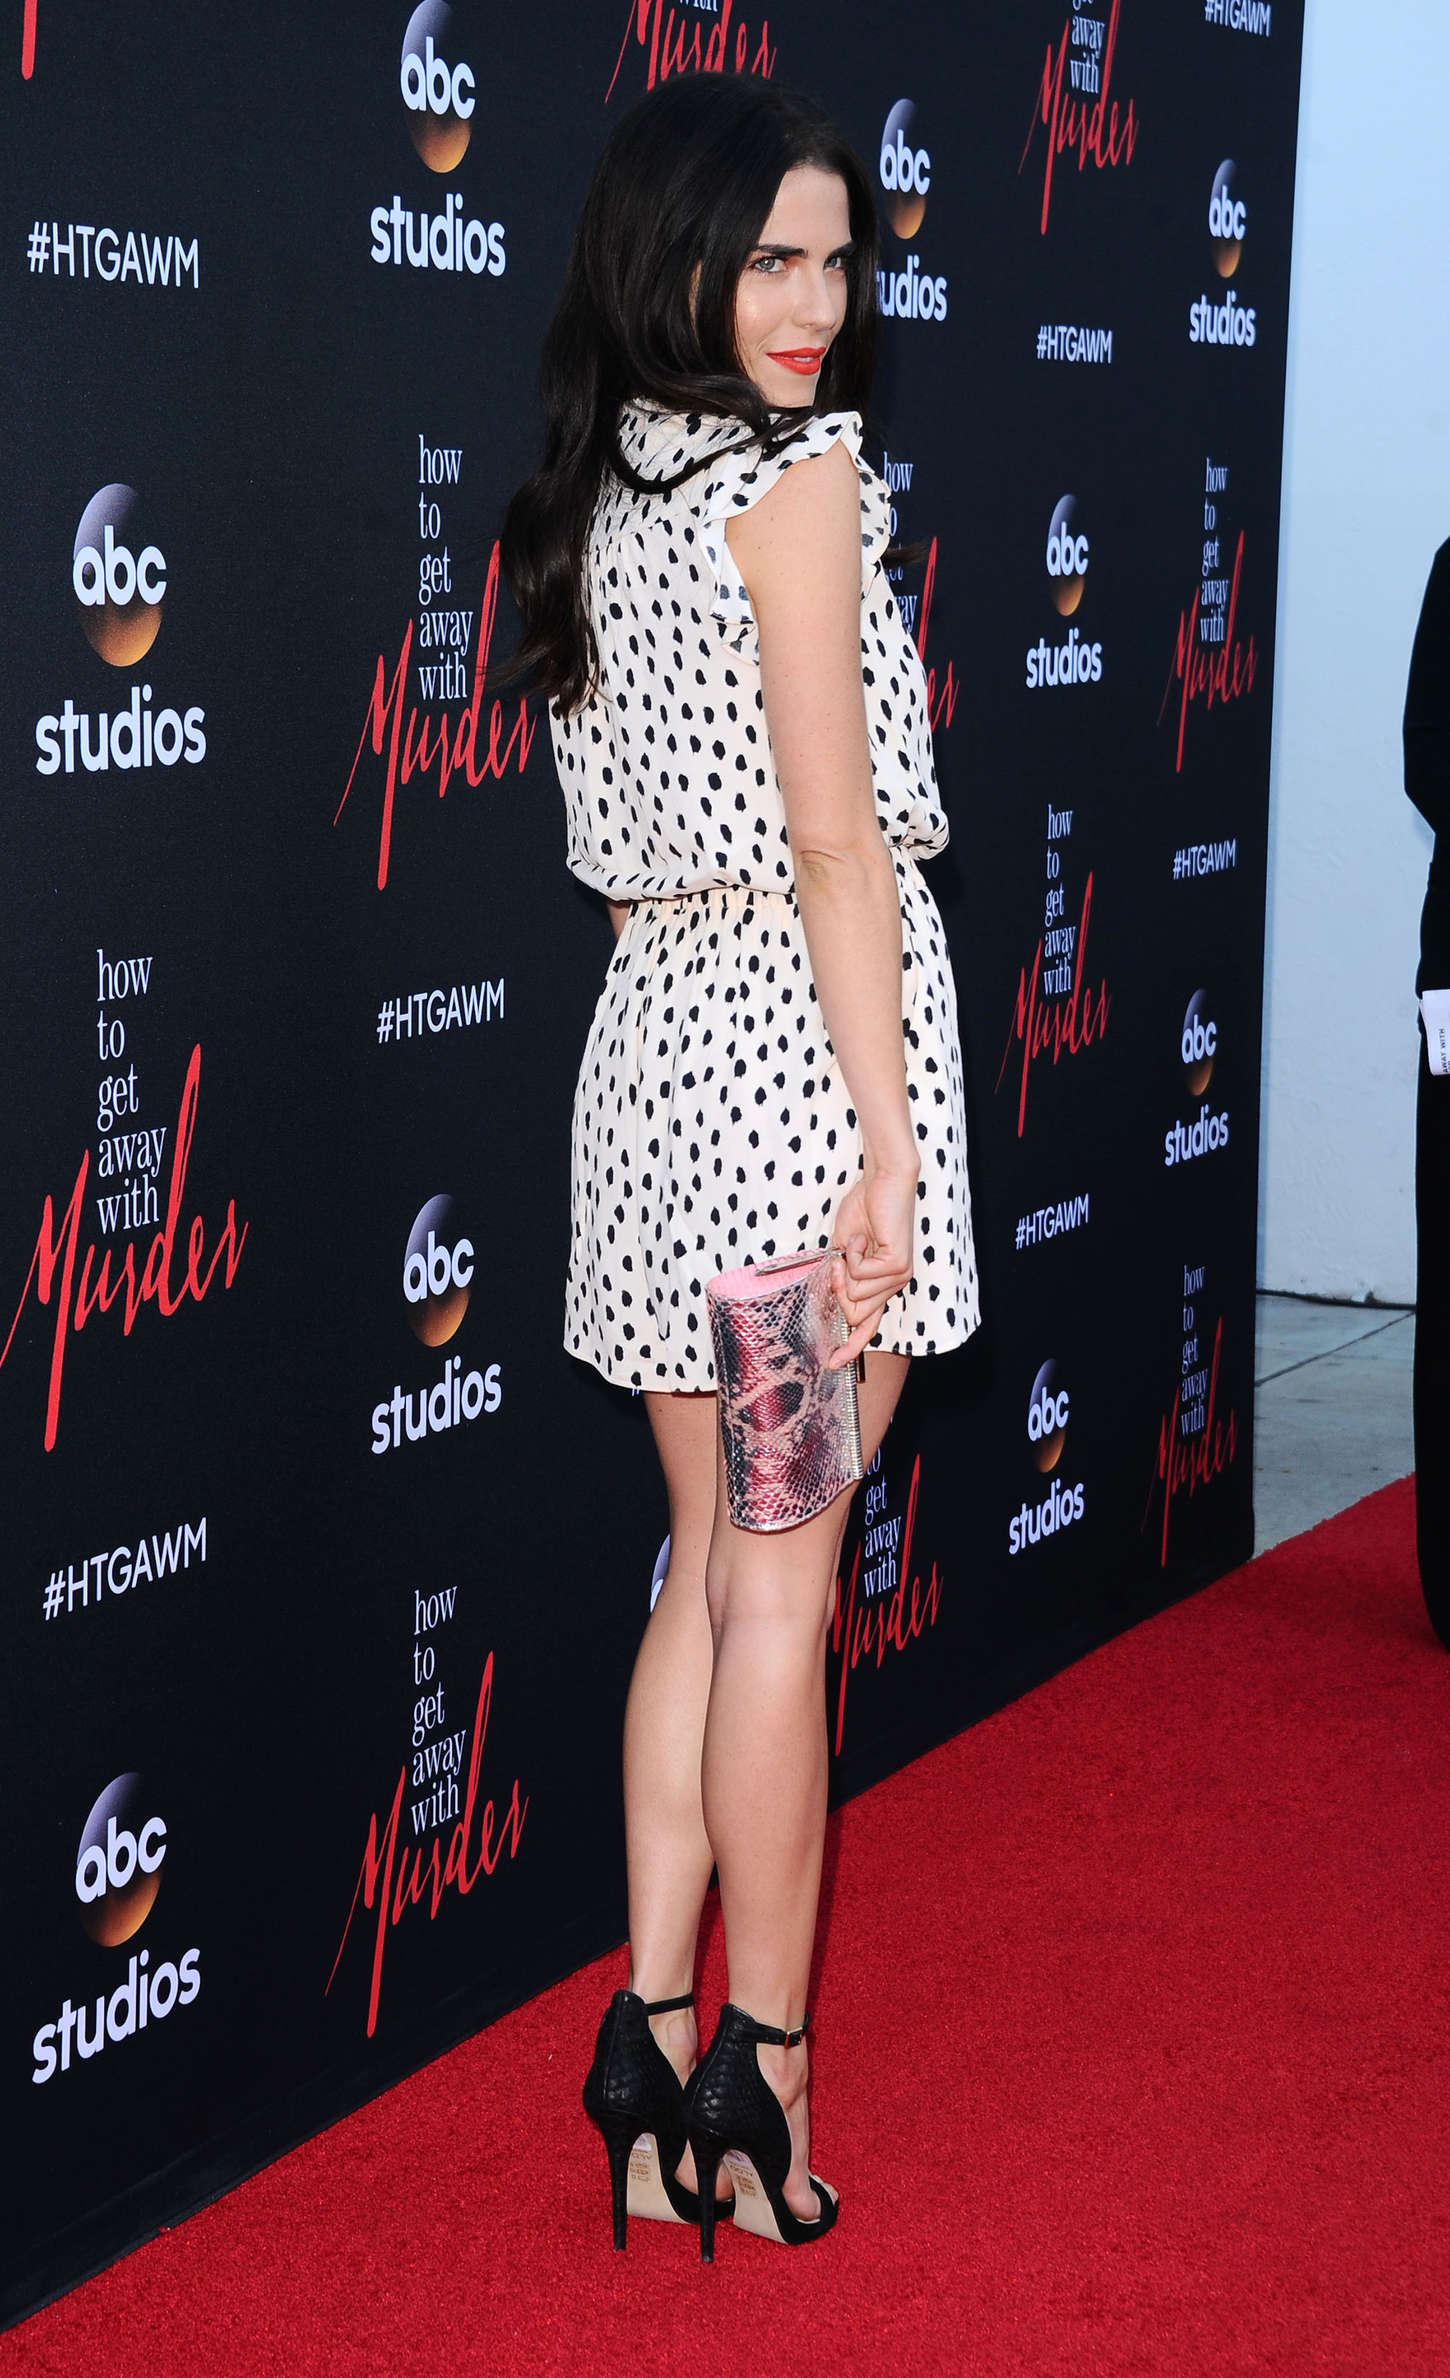 Karla Souza: How To Get Away With Murder Screening Event '